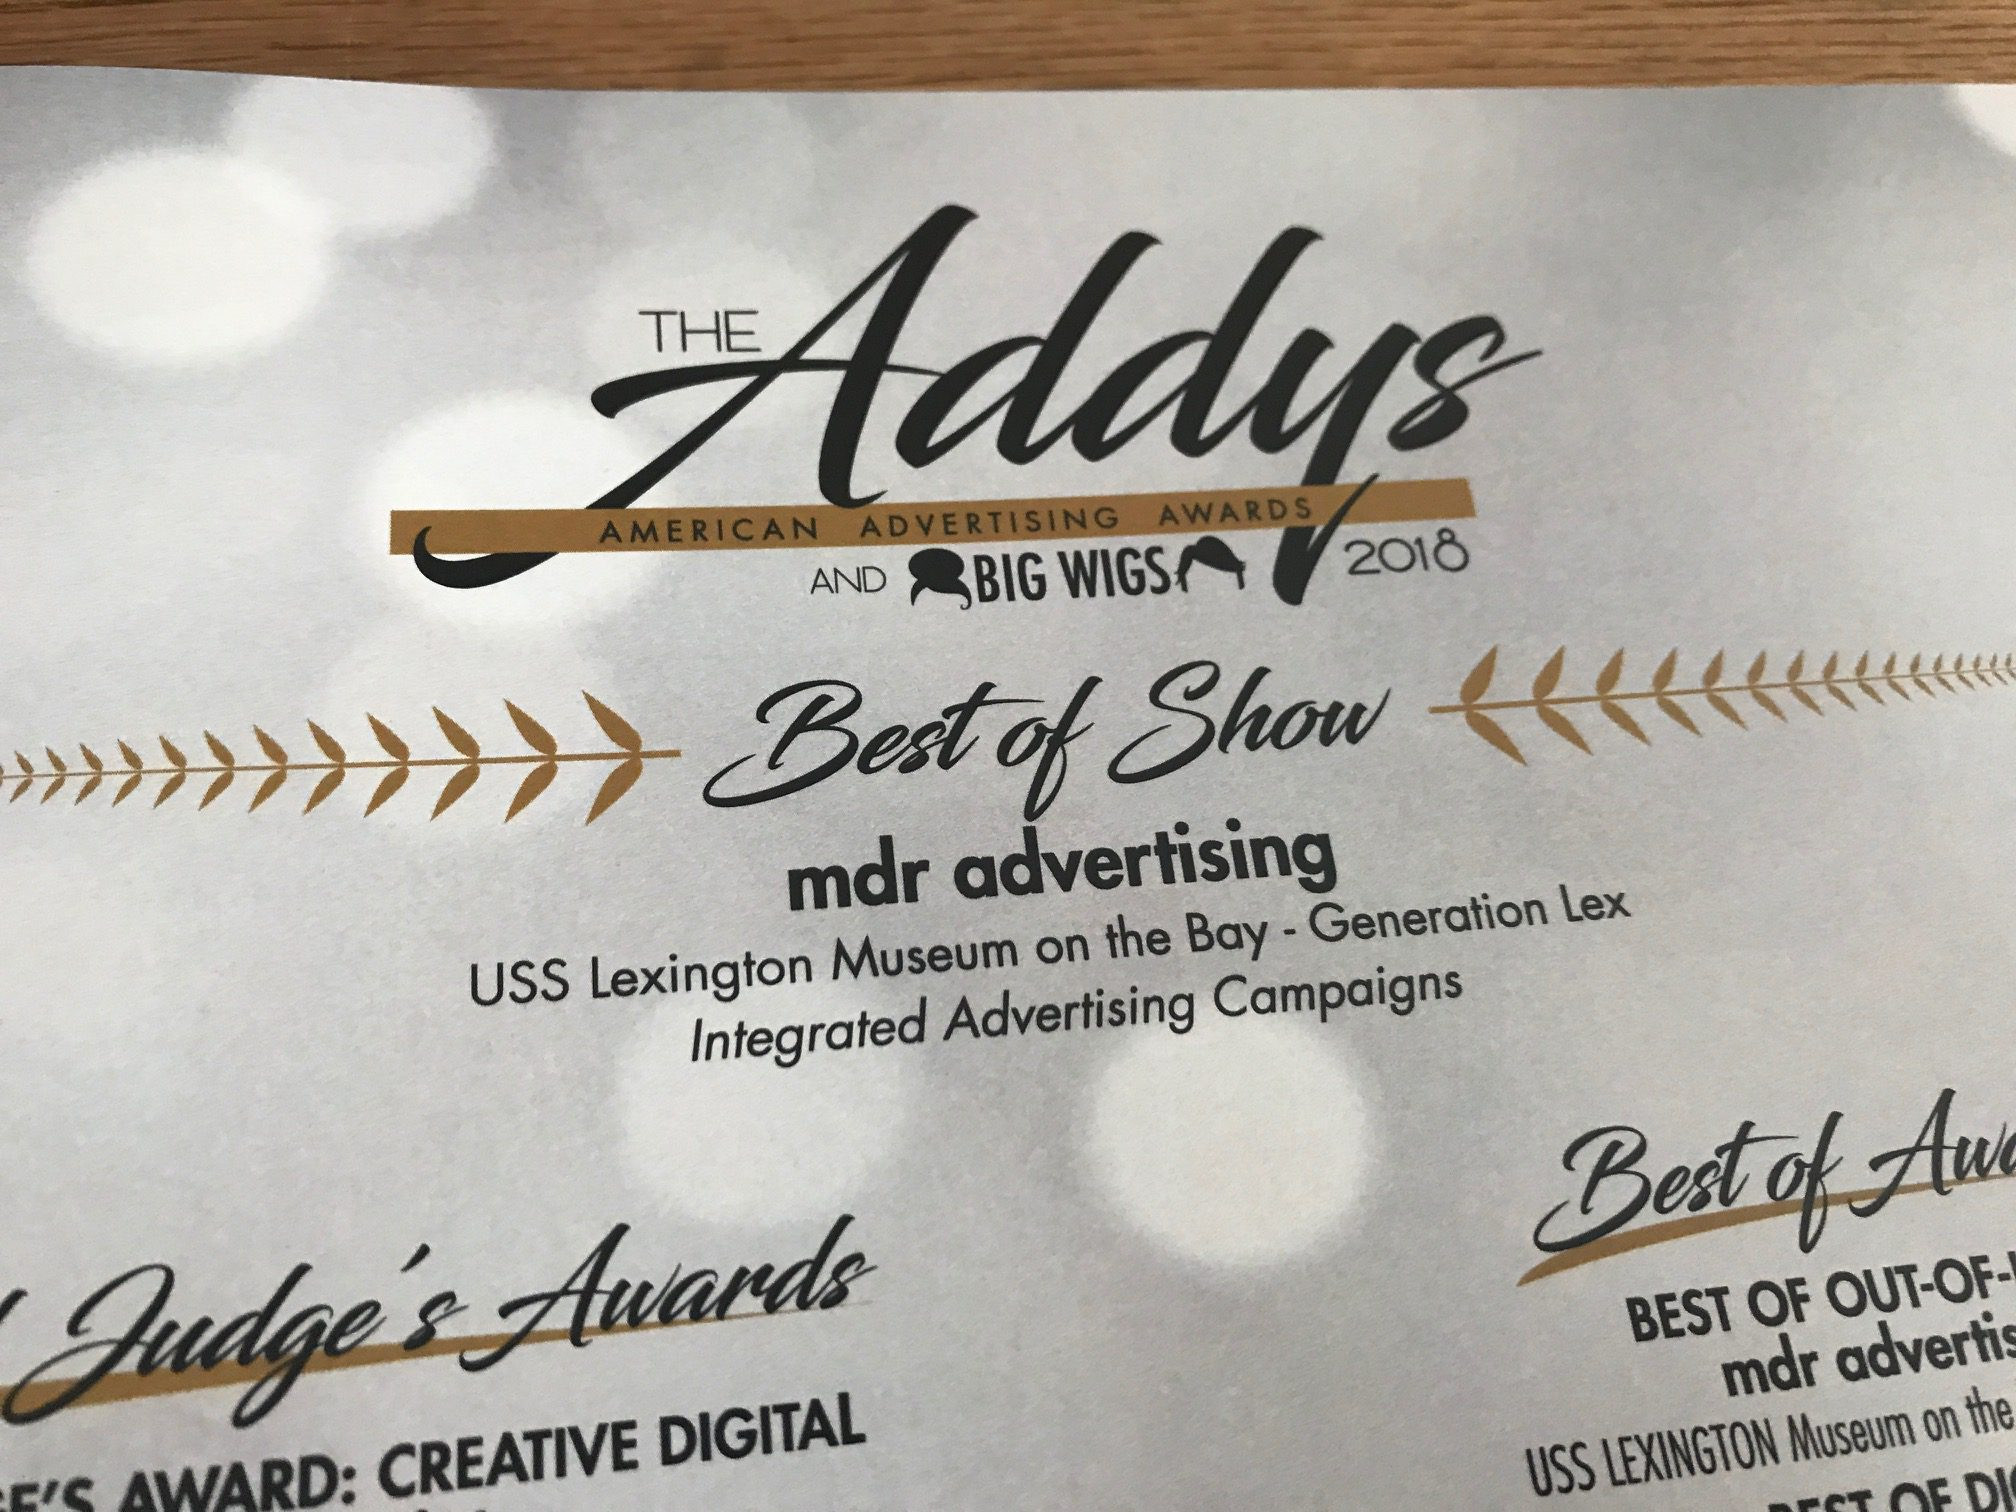 MDR Wins Big at the 2018 American Advertising Awards